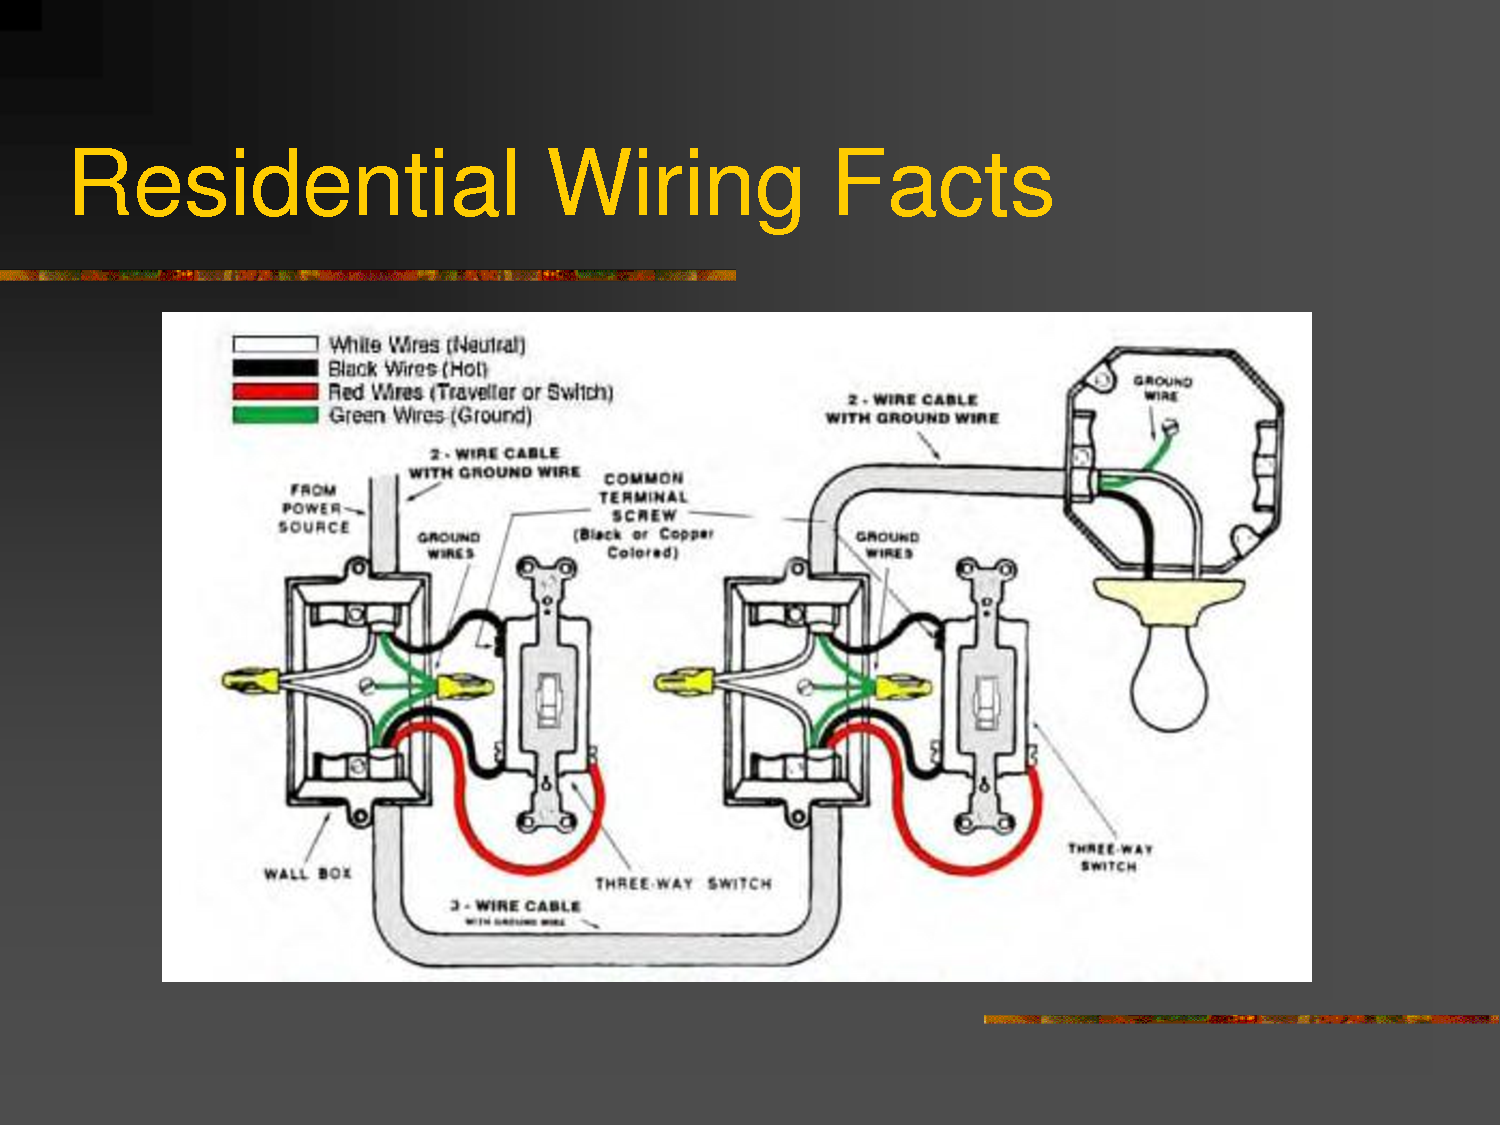 4 Best Images Of Residential Wiring Diagrams House Electrical Light Switch Wiring Three Way Switch Electricity